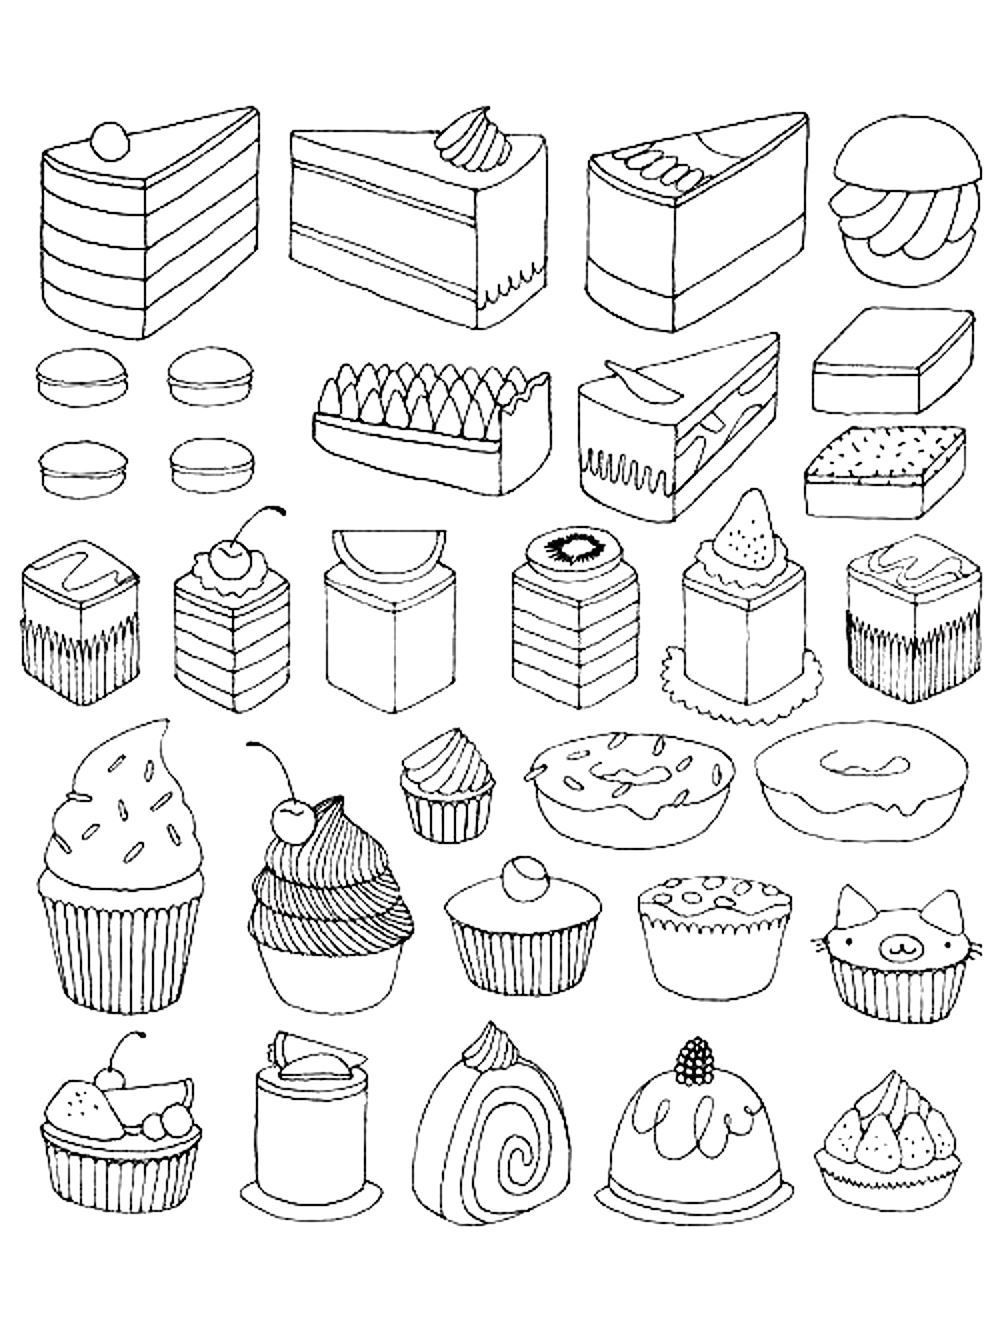 Pin Auf Kids Coloring Pages